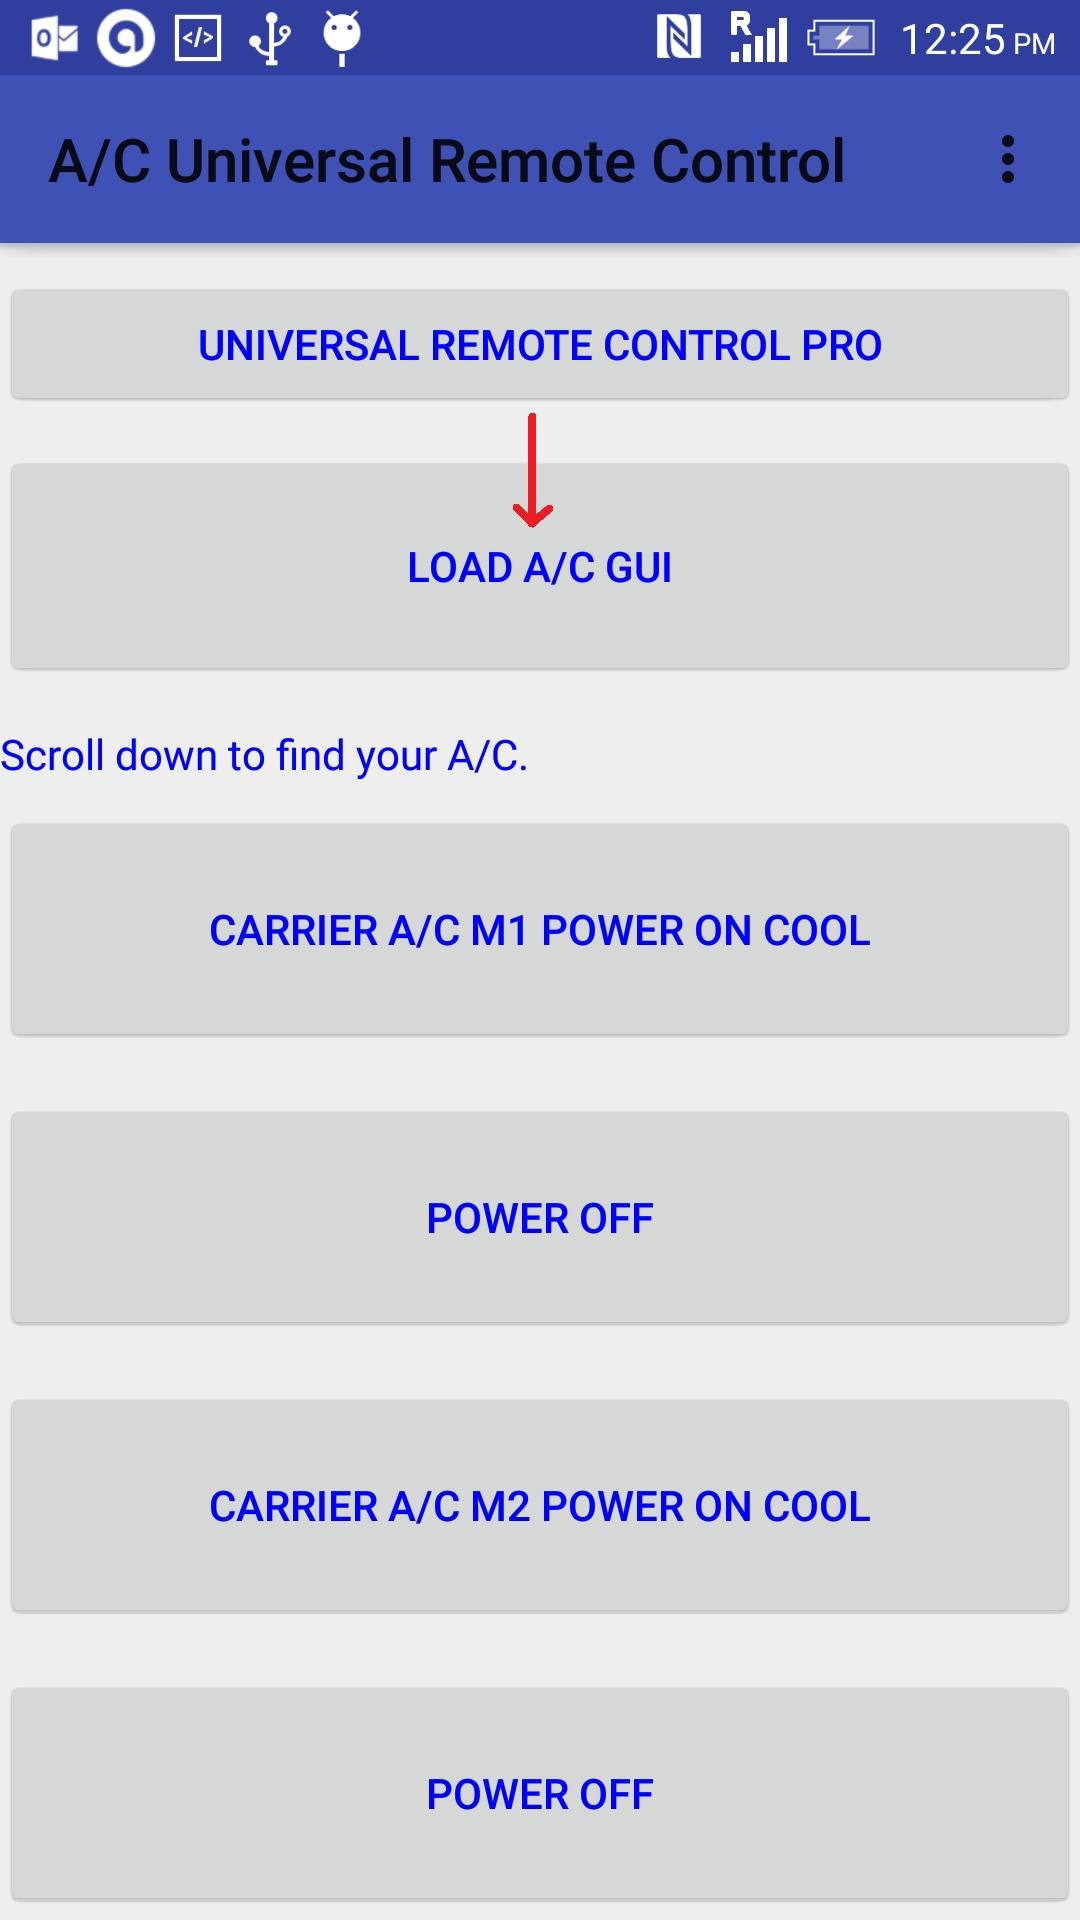 A/C Universal Remote Control for Android - APK Download